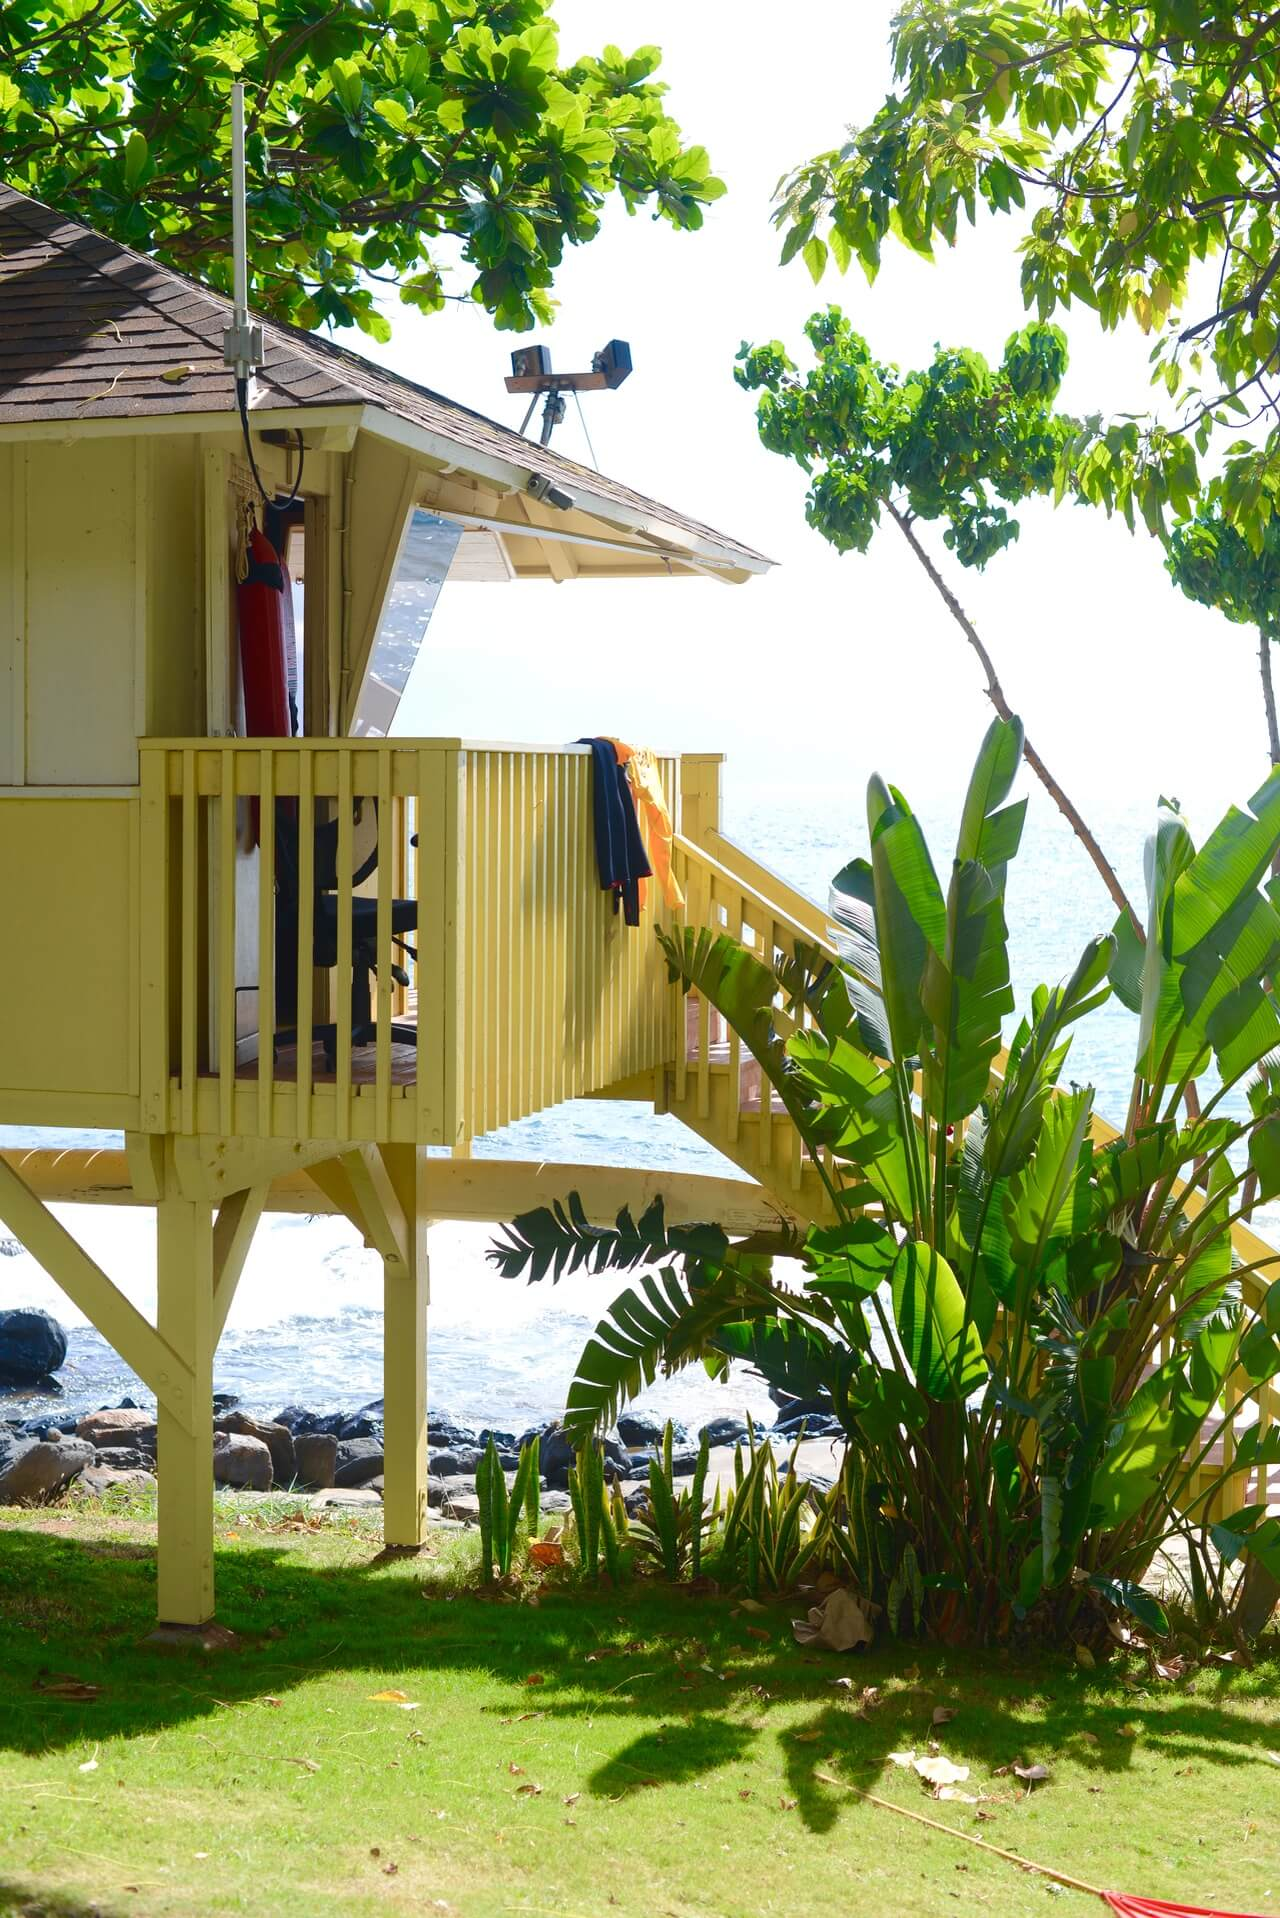 the cutest yellow lifeguard towers in maui